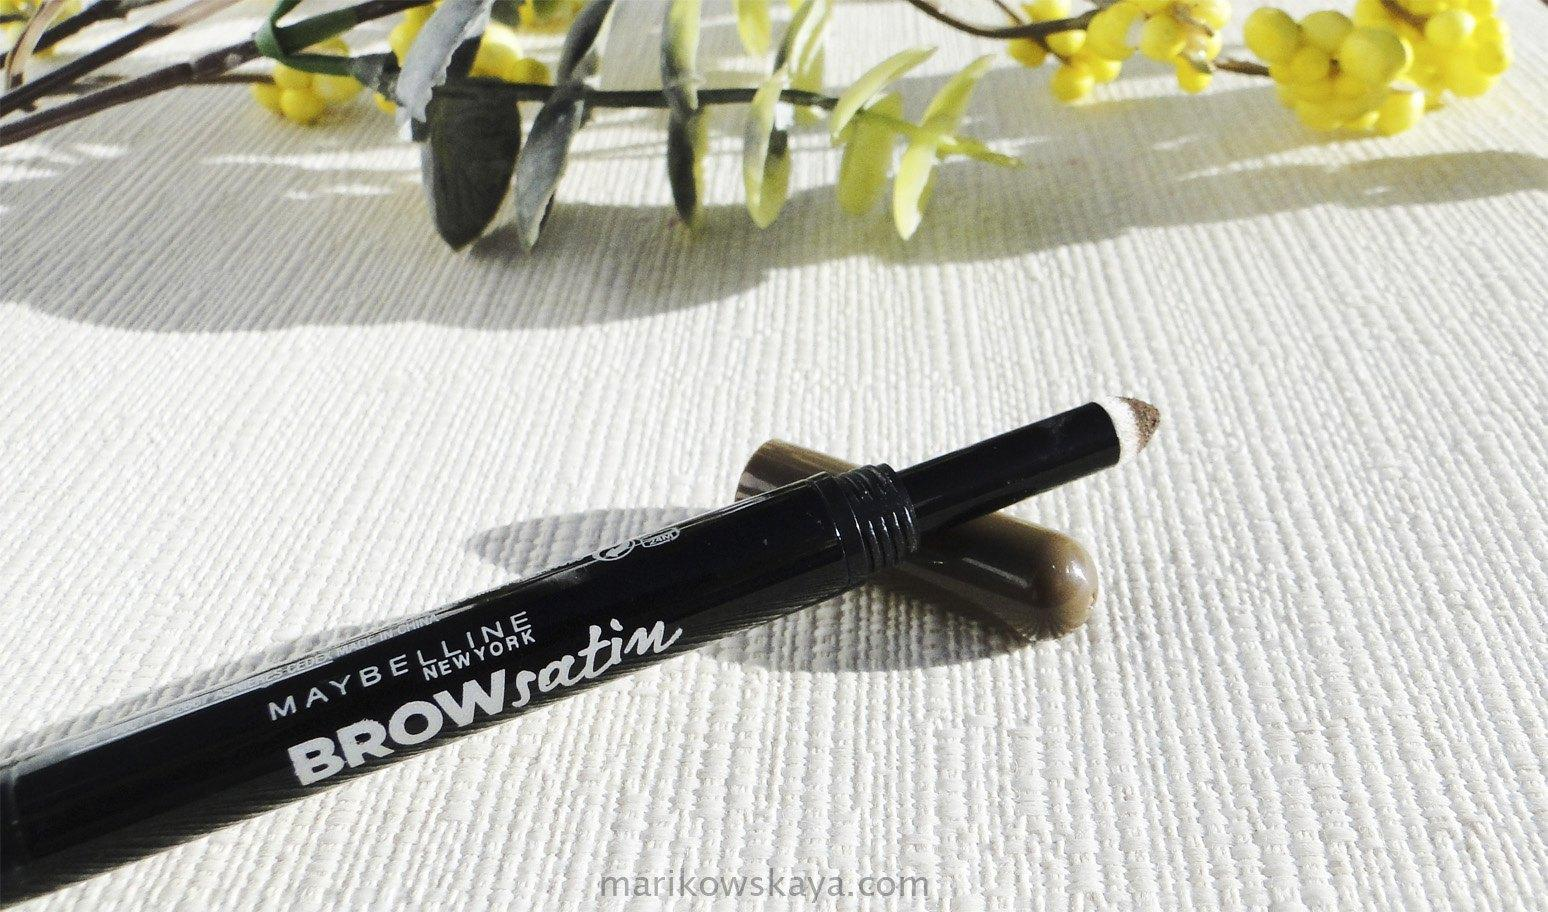 lapicesdecejas-maybelline-browsatin